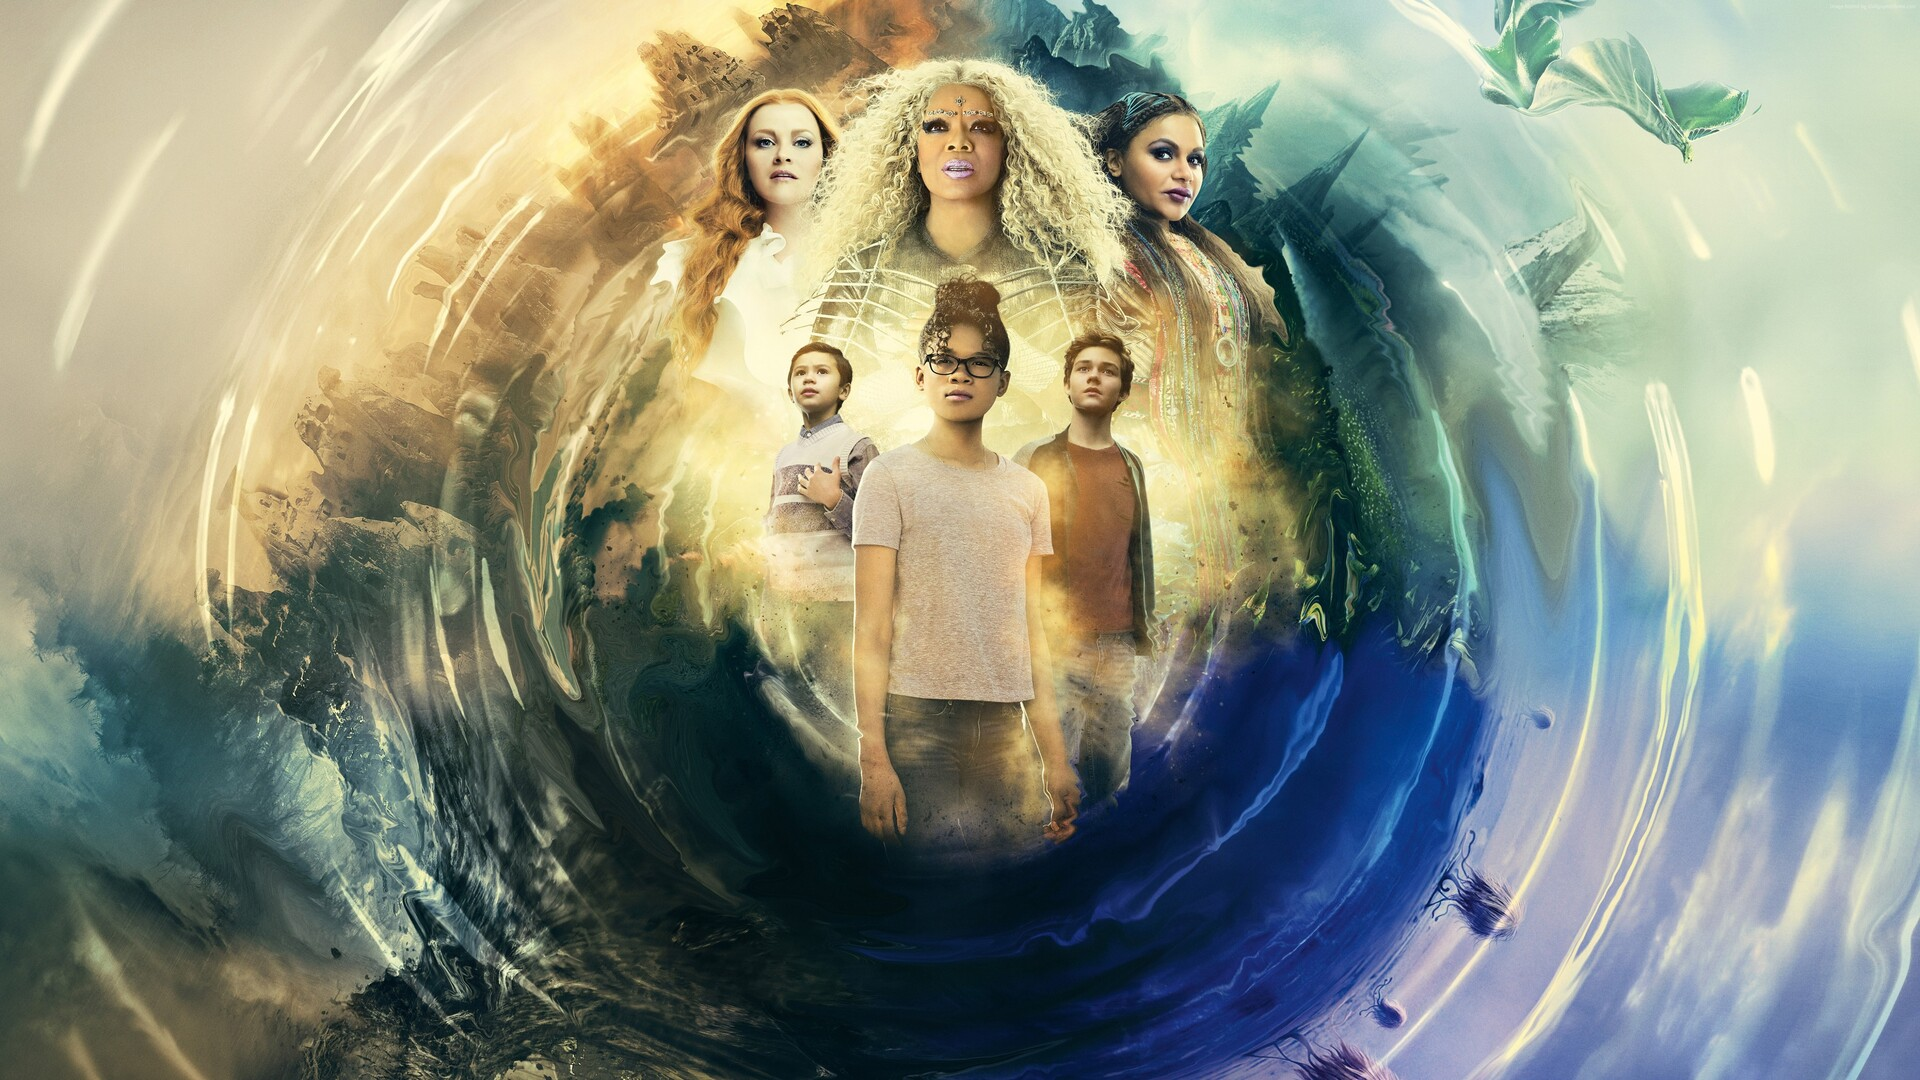 A Wrinkle In Time 2018 Movie Hd Movies 4k Wallpapers: 1920x1080 A Wrinkle In Time Movie 2018 5k Poster Laptop